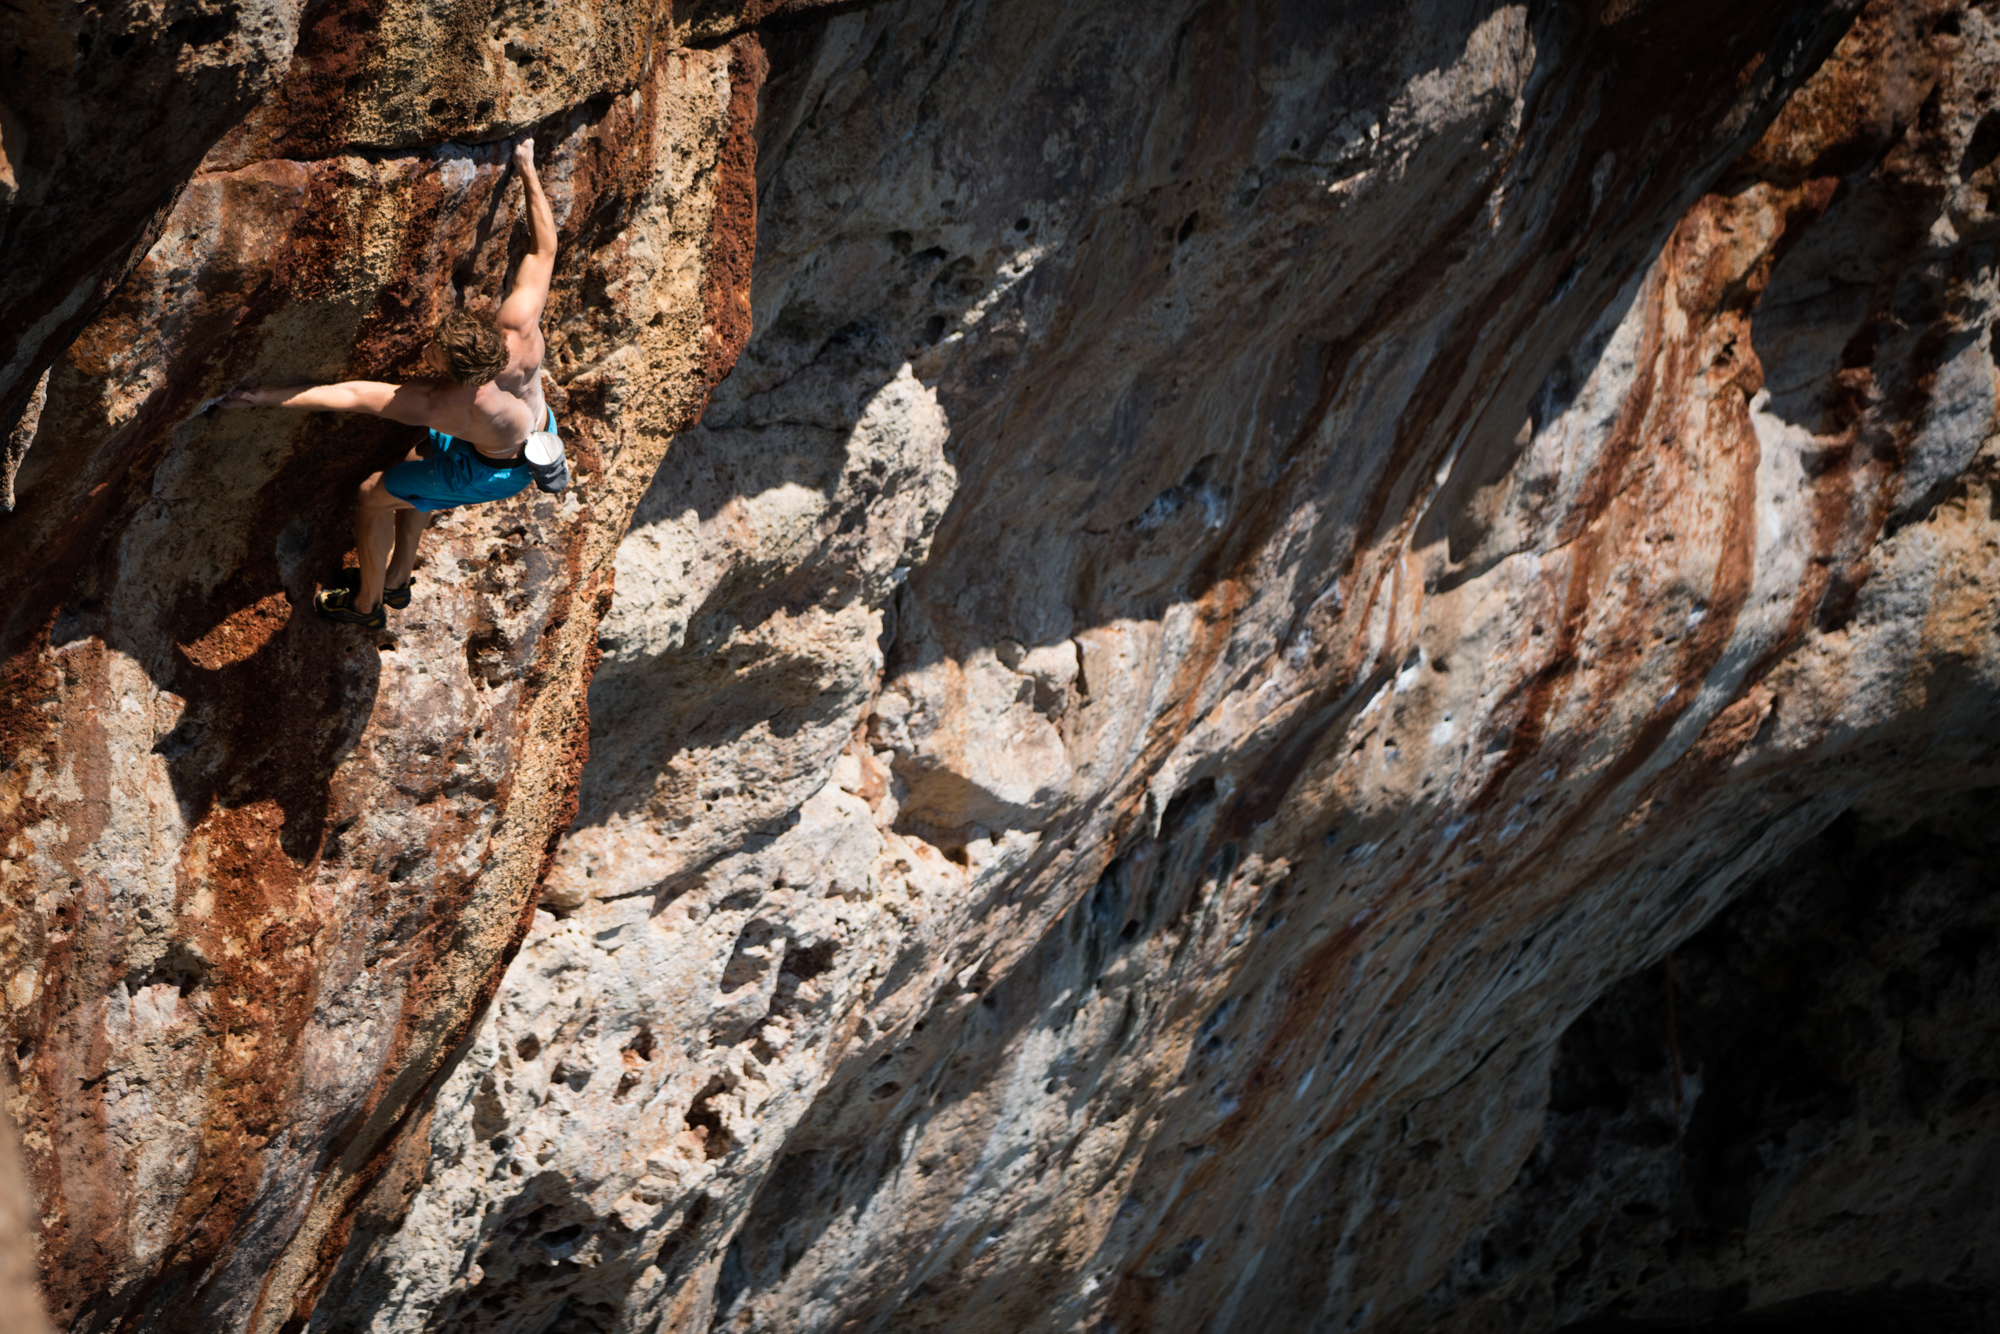 Greg warms up on Surfer Dead, 11b. Amazing pockets with a committing crux that comes in the last moves.